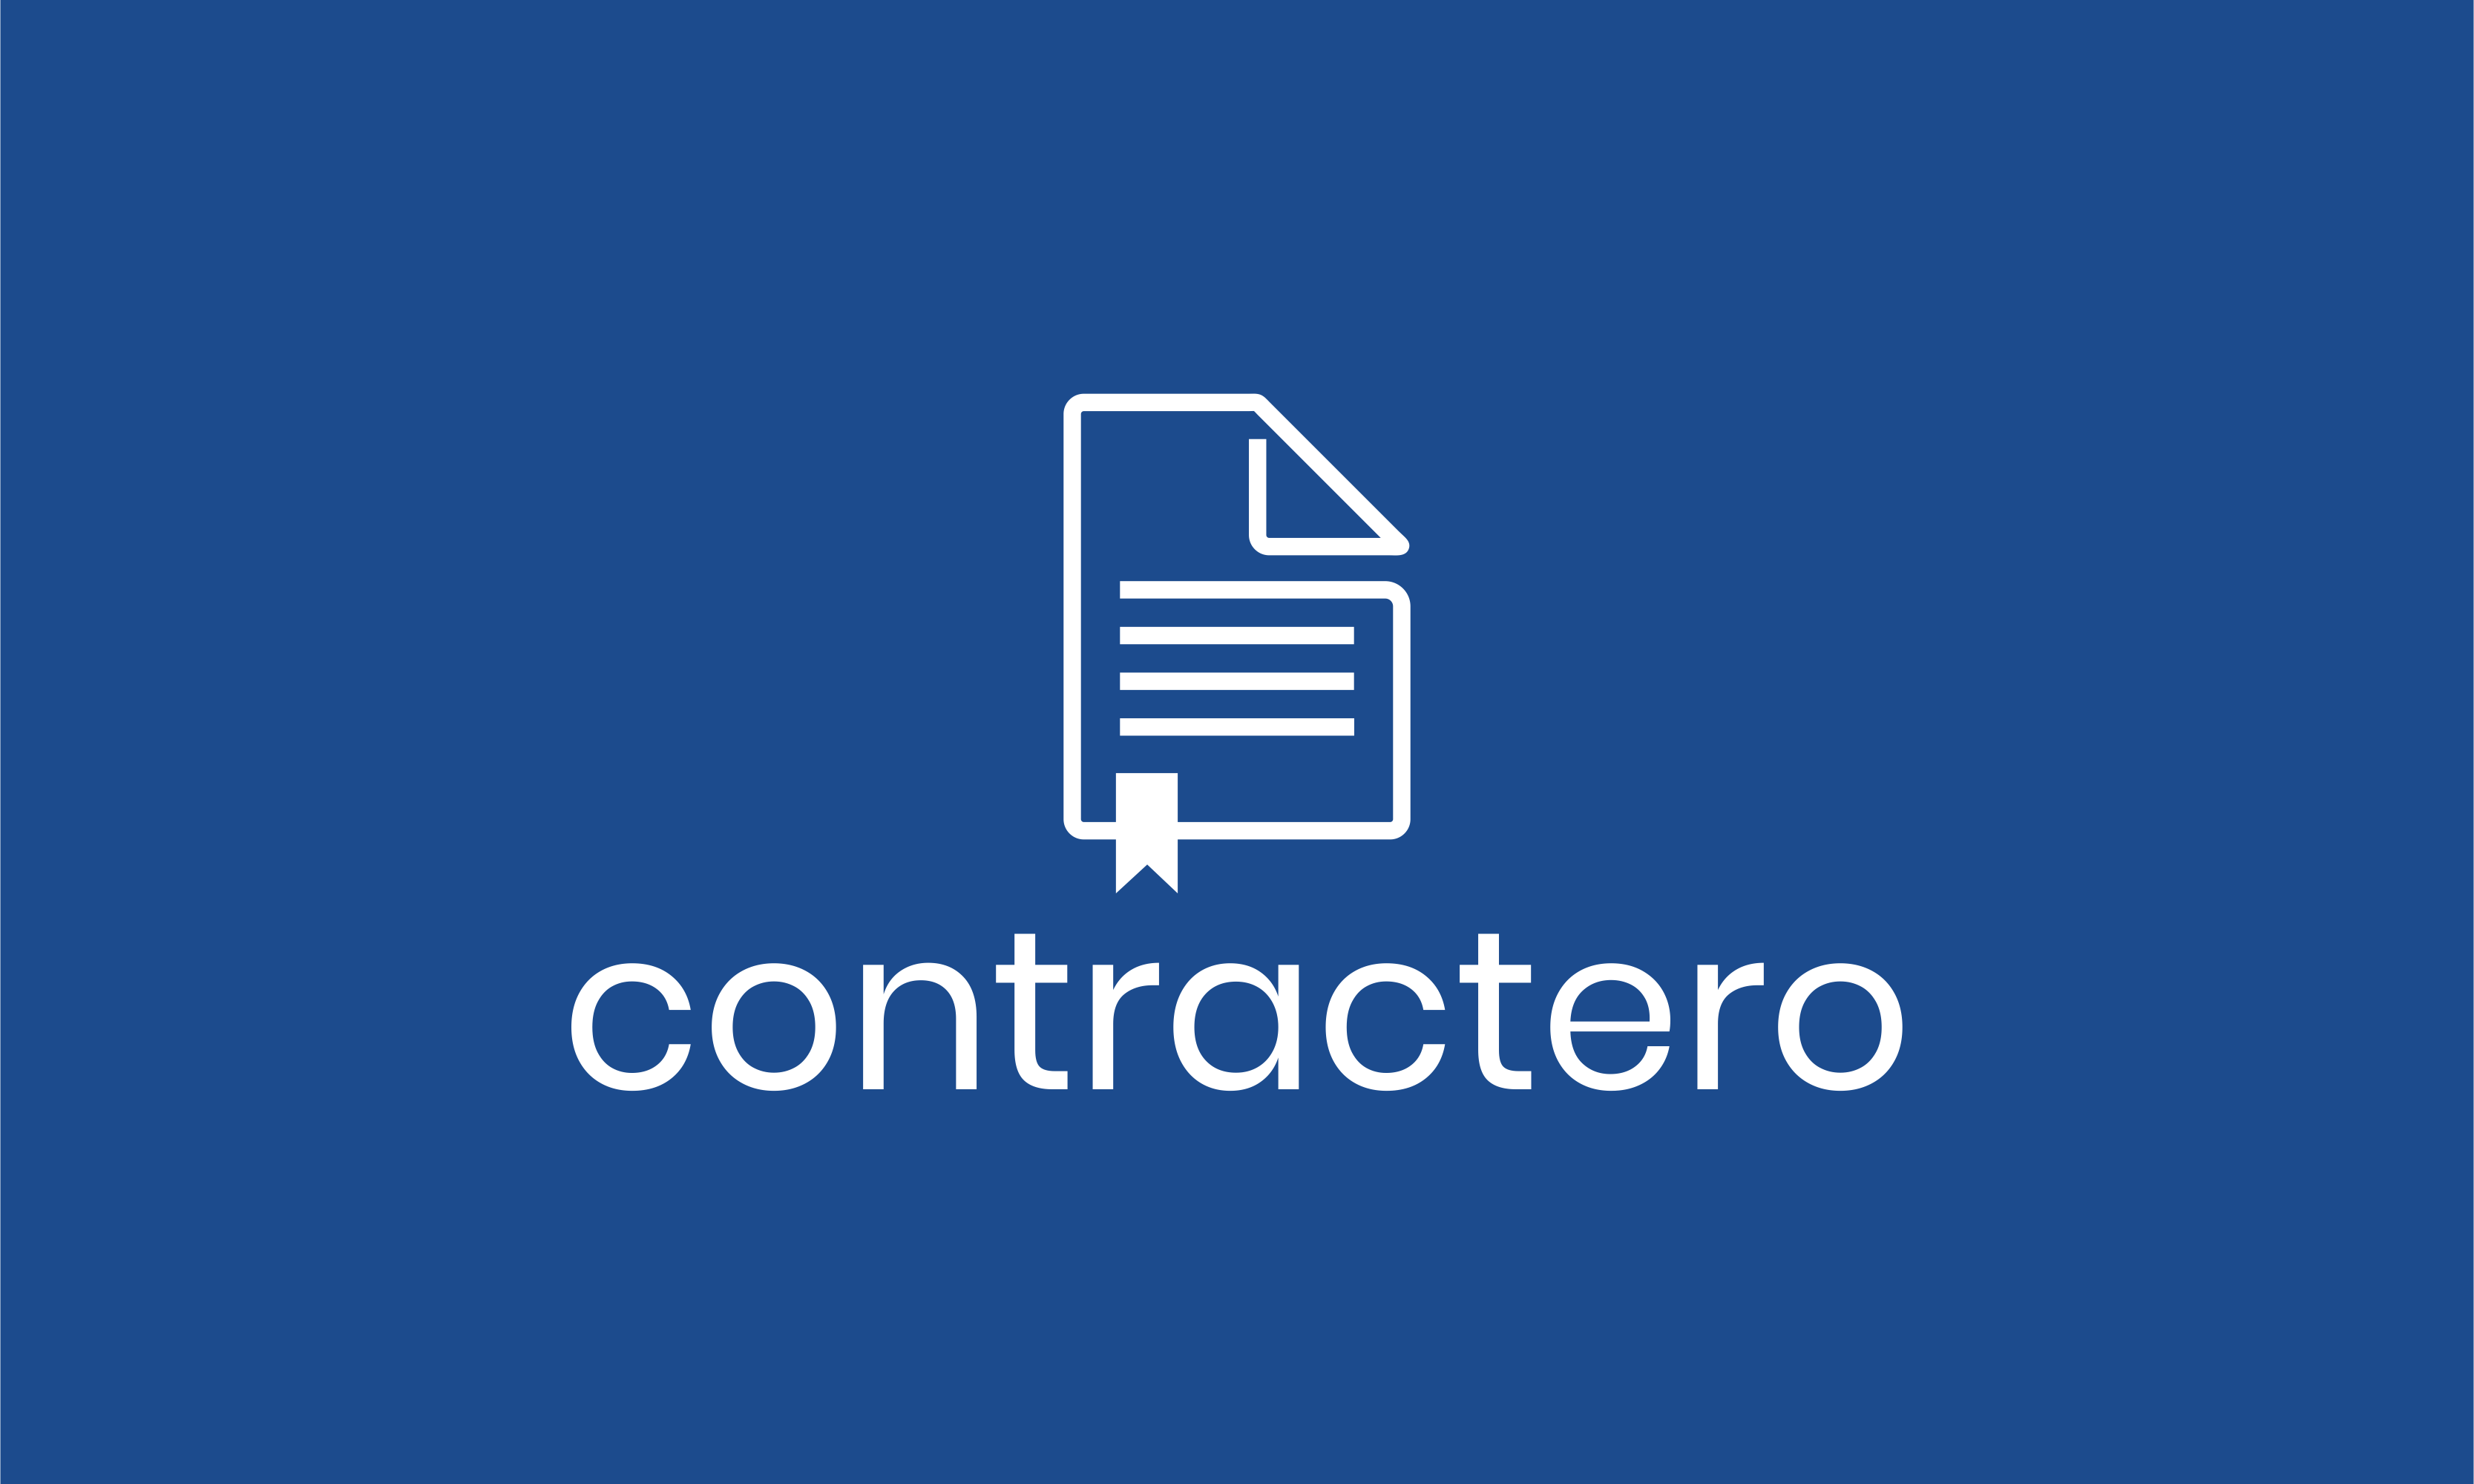 Contractero - Law business name for sale